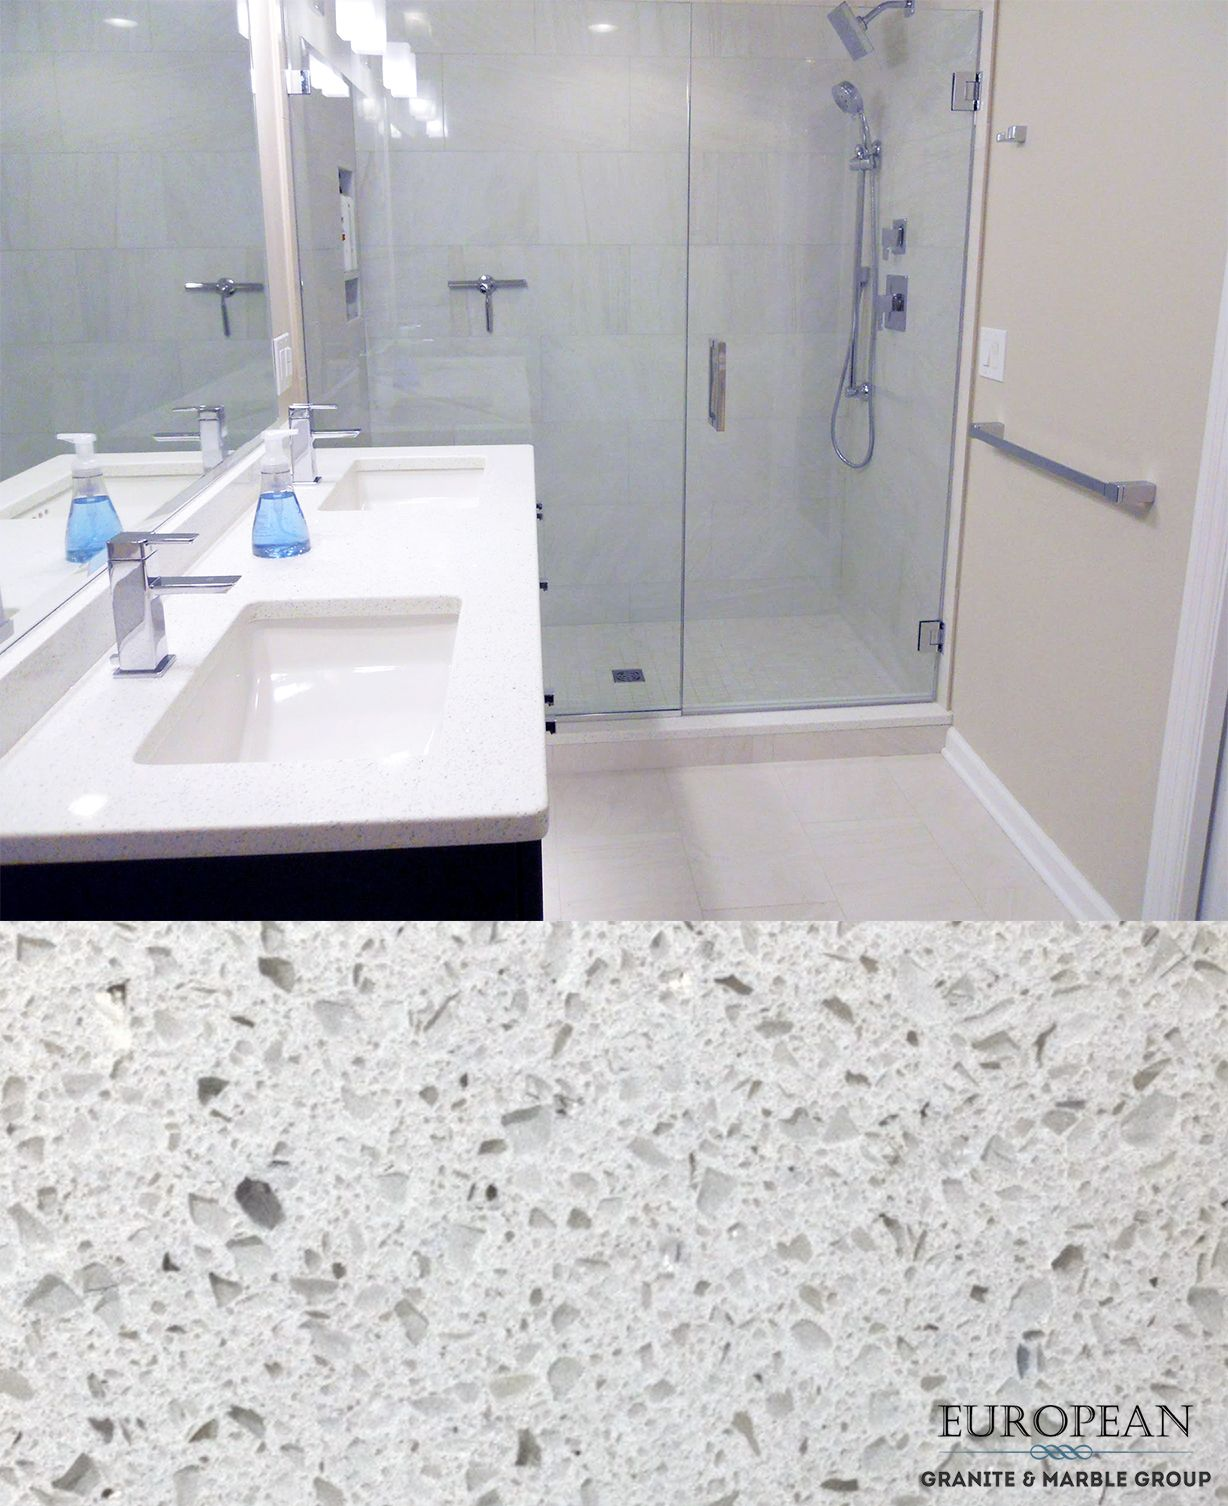 This U0027Sparkling Whiteu0027 Quartz Countertop Is A Cool White Tone With An  Alluring Glimmer